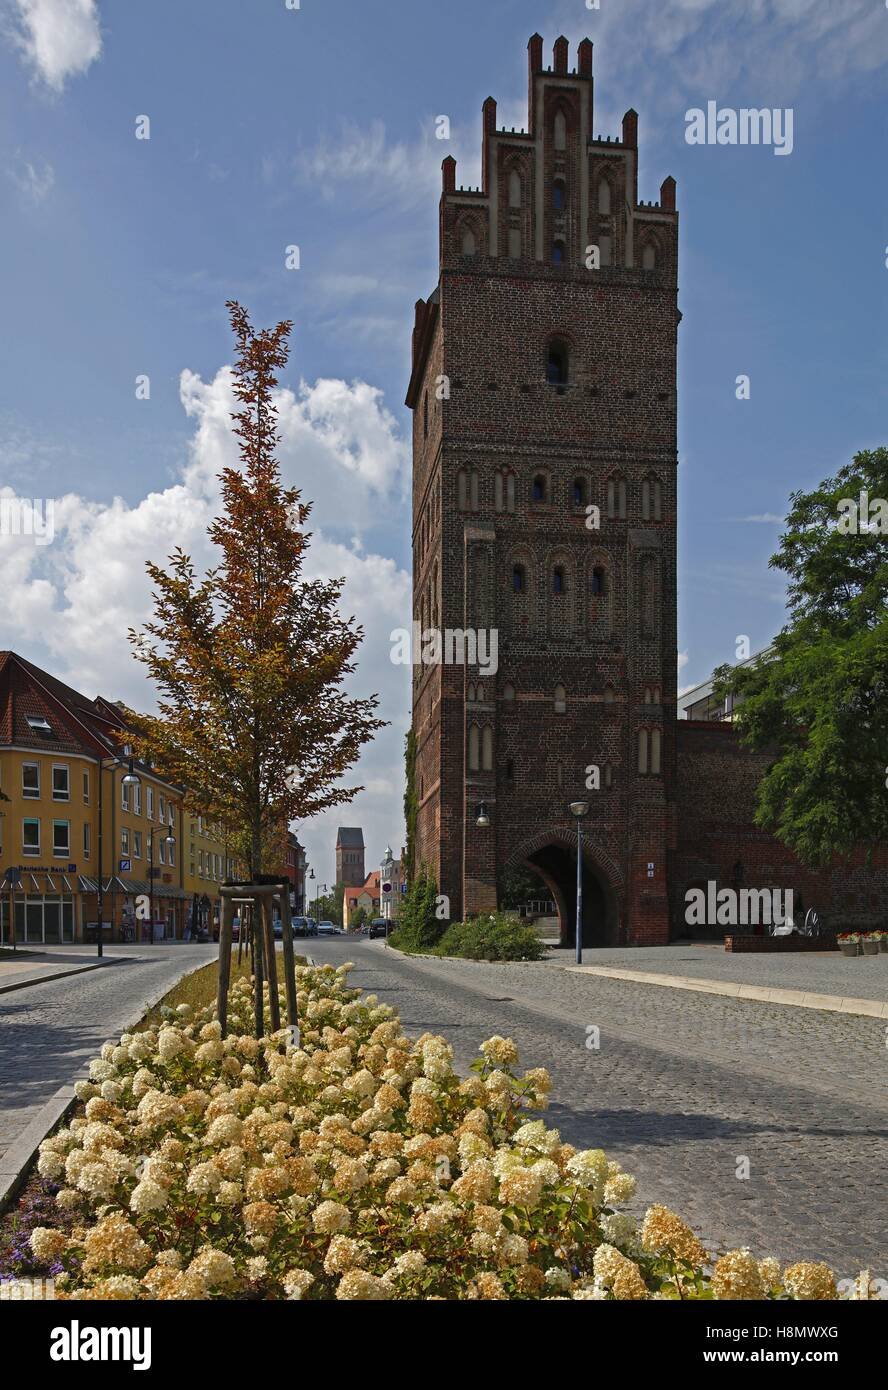 The stone gate is a landmark of Anklam, Anklam, Mecklenburg-West Pomerania, Germany,  The 32-metre-high Anklamer - Stock Image